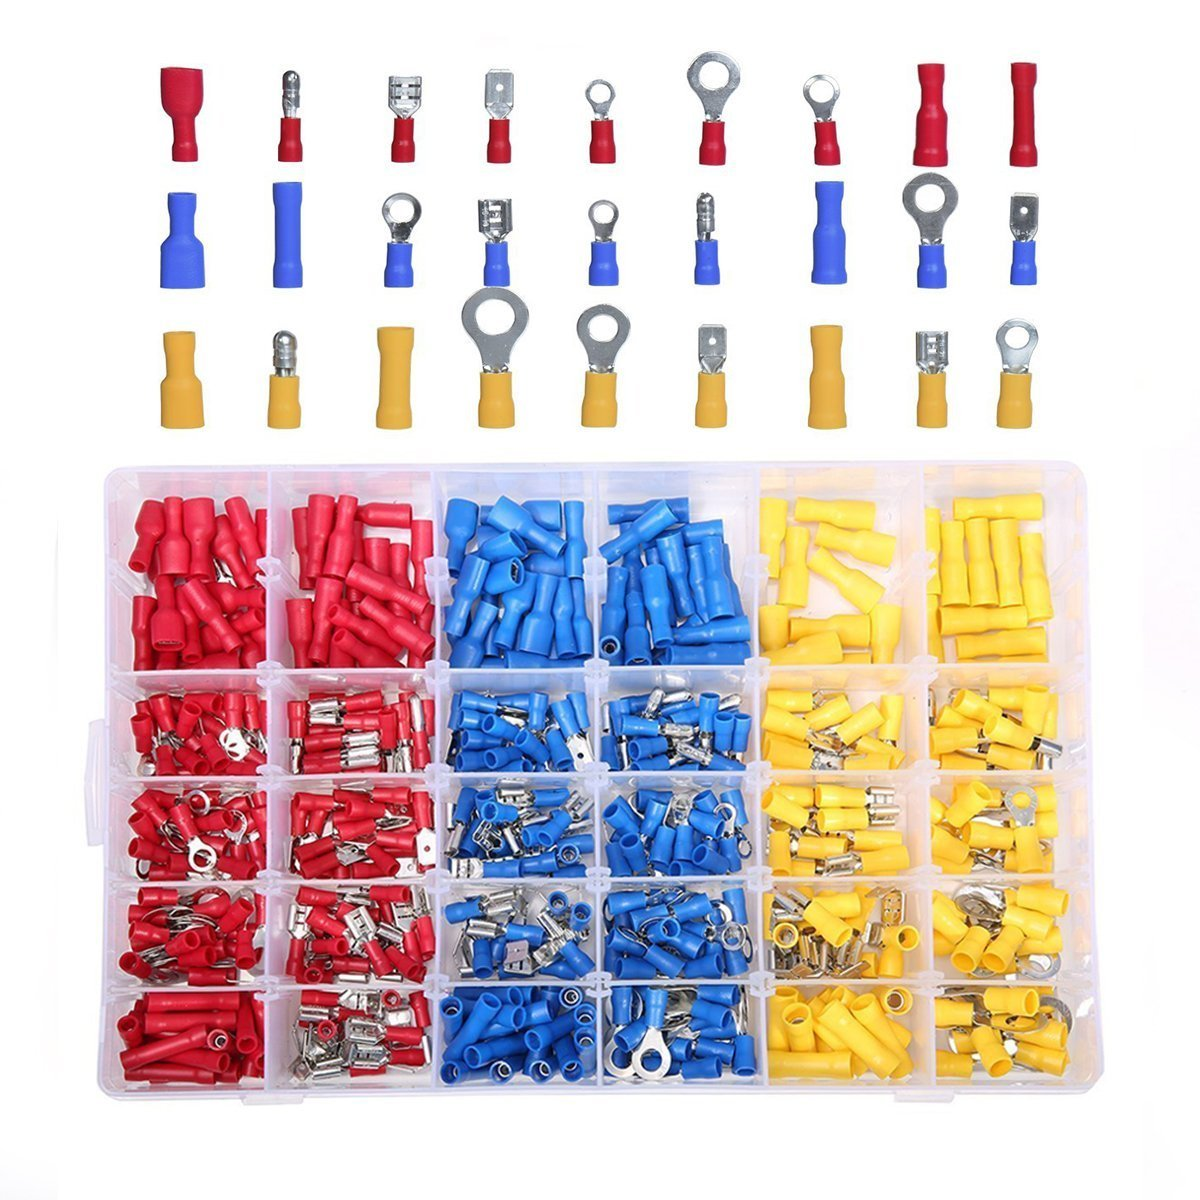 480X Insulated Electrical Wire Terminal Assorted Crimp Spade Connectors Kit Case